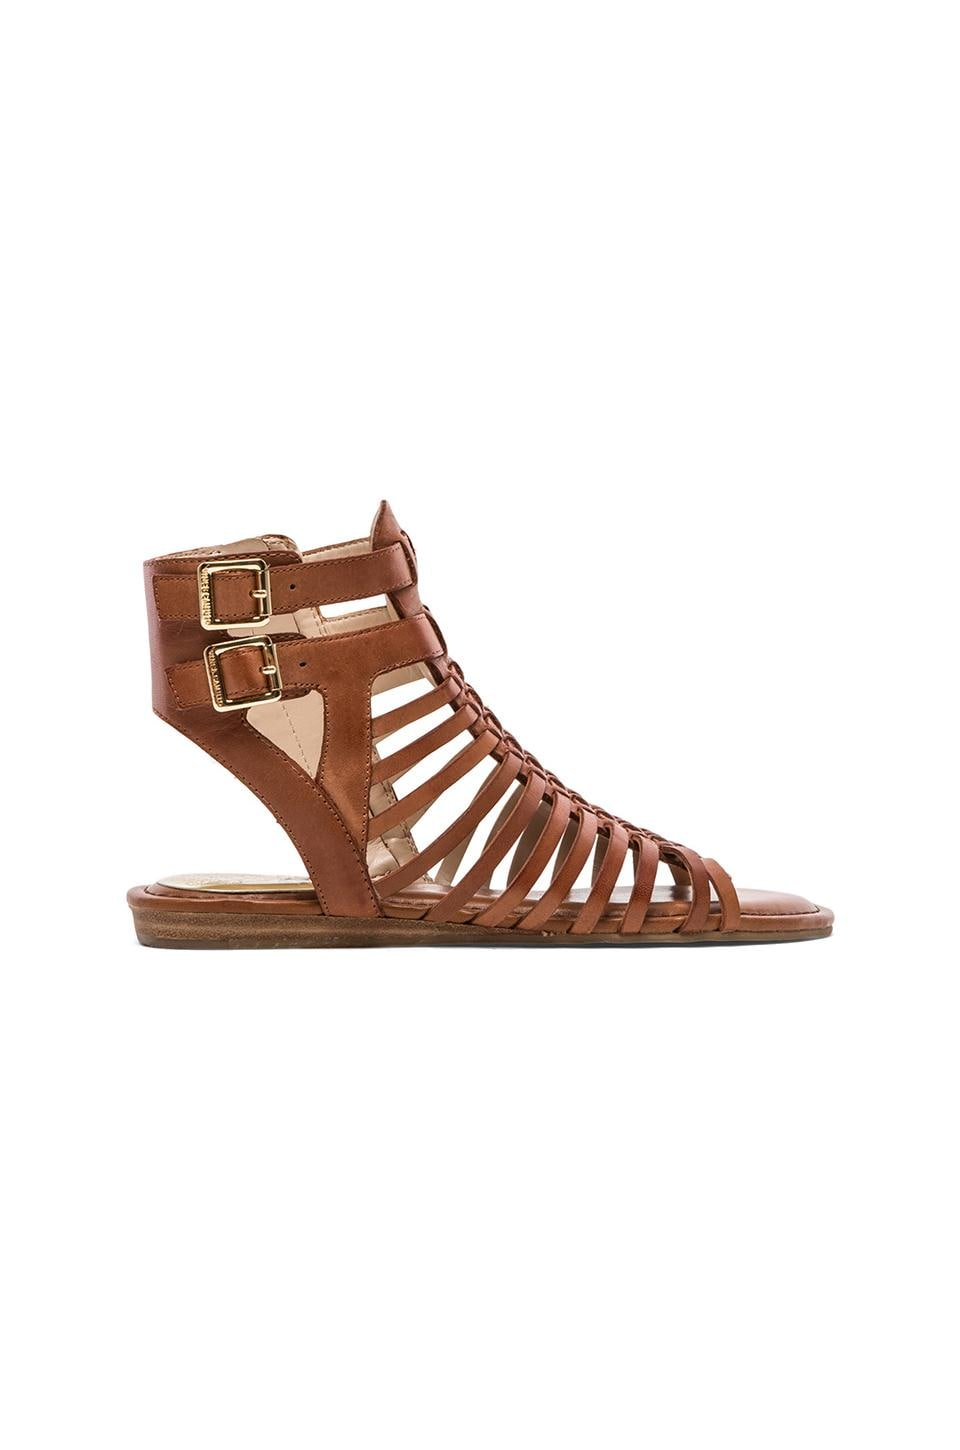 Vince Camuto Kensil Sandal in Fudge